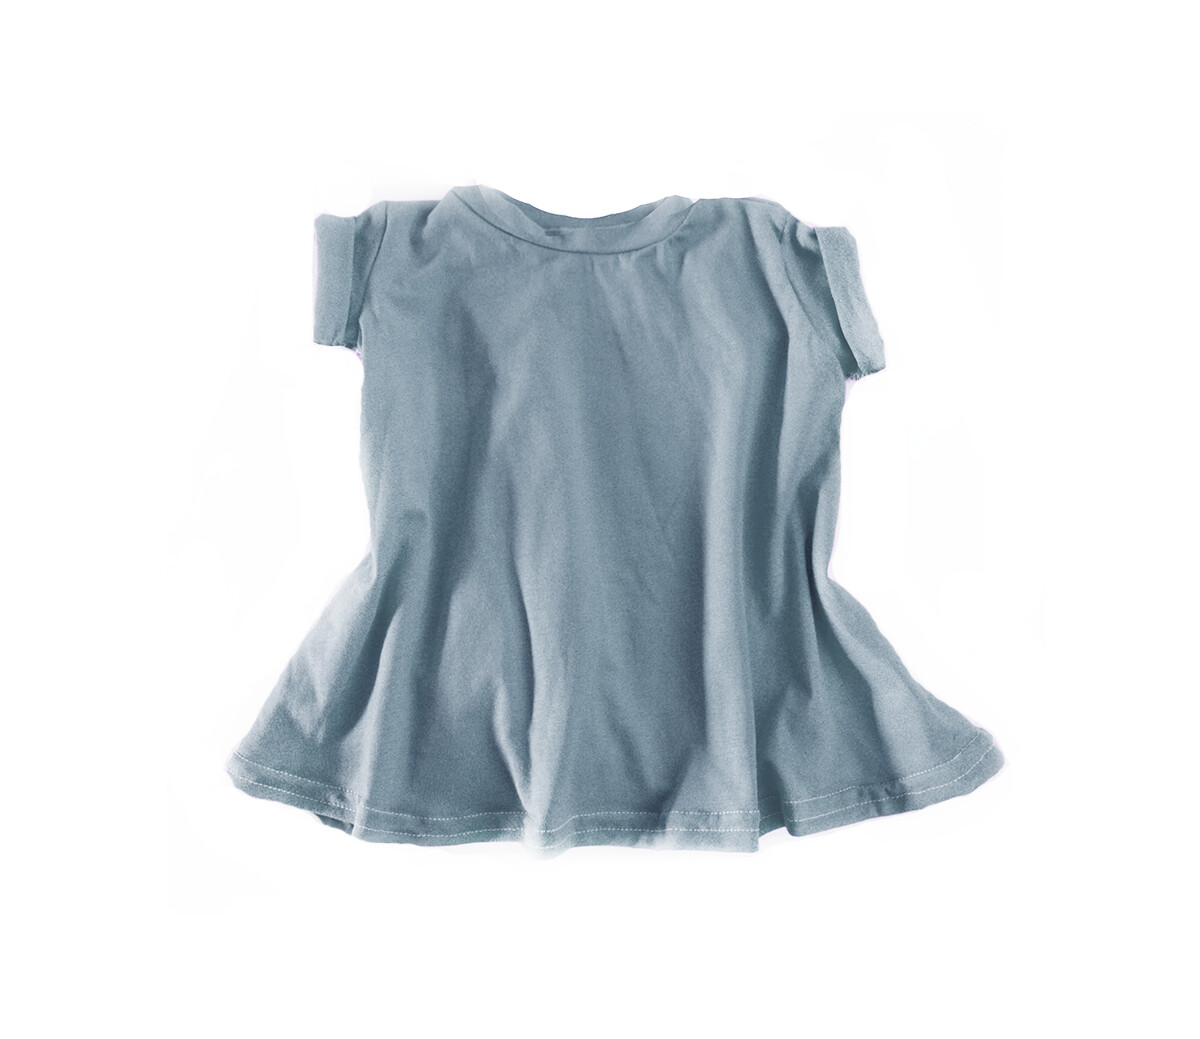 Little Sprout™ Grow with Me T-Shirt Dress | Stone Blue | Tencel